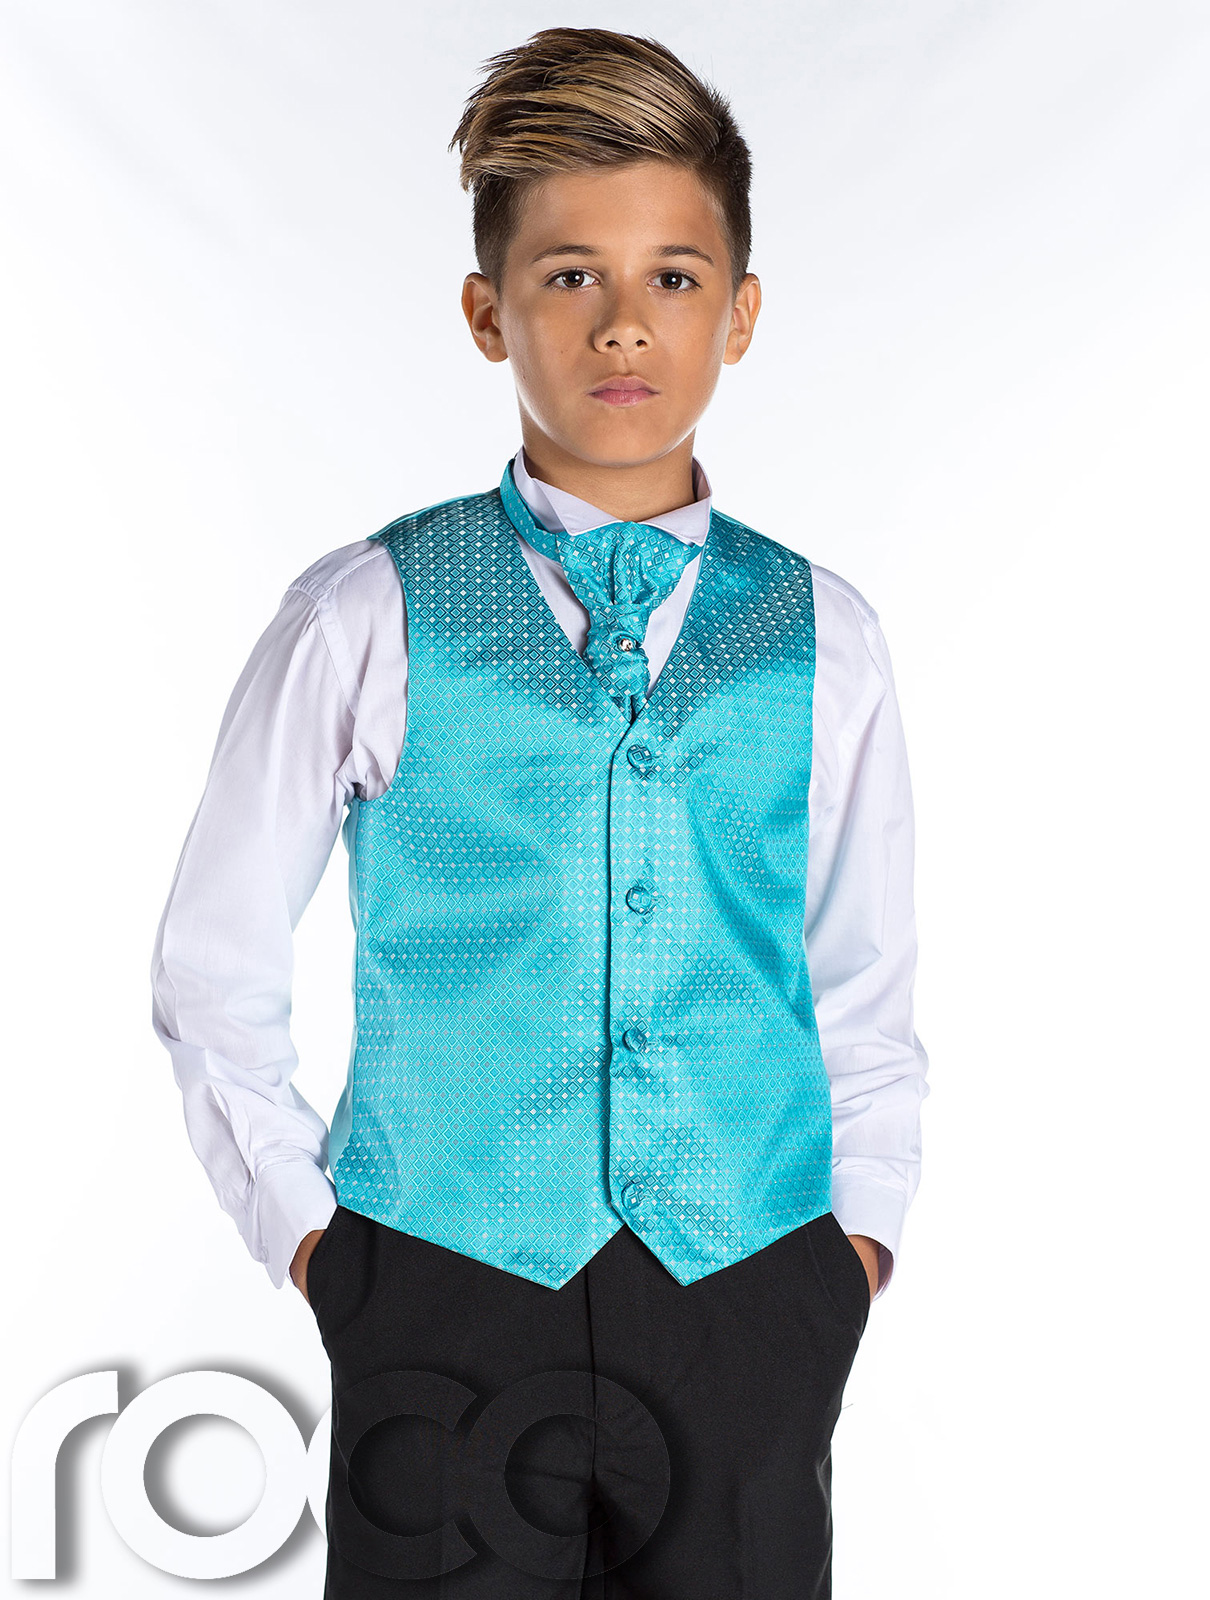 FAVOLOOK Boys Waistcoat, Kids Suits & Gentleman Sets with Vest + Bowknot Shirt + Pants for Daily Wear Special Occasion. by FAVOLOOK. Style and Wedding Tuxedo Waistcoat Outfit Suit Season: Autumn Dan Smith DGEE Multiple Plain Microfiber Boys Vest Bow Tie Set for Age 6 .